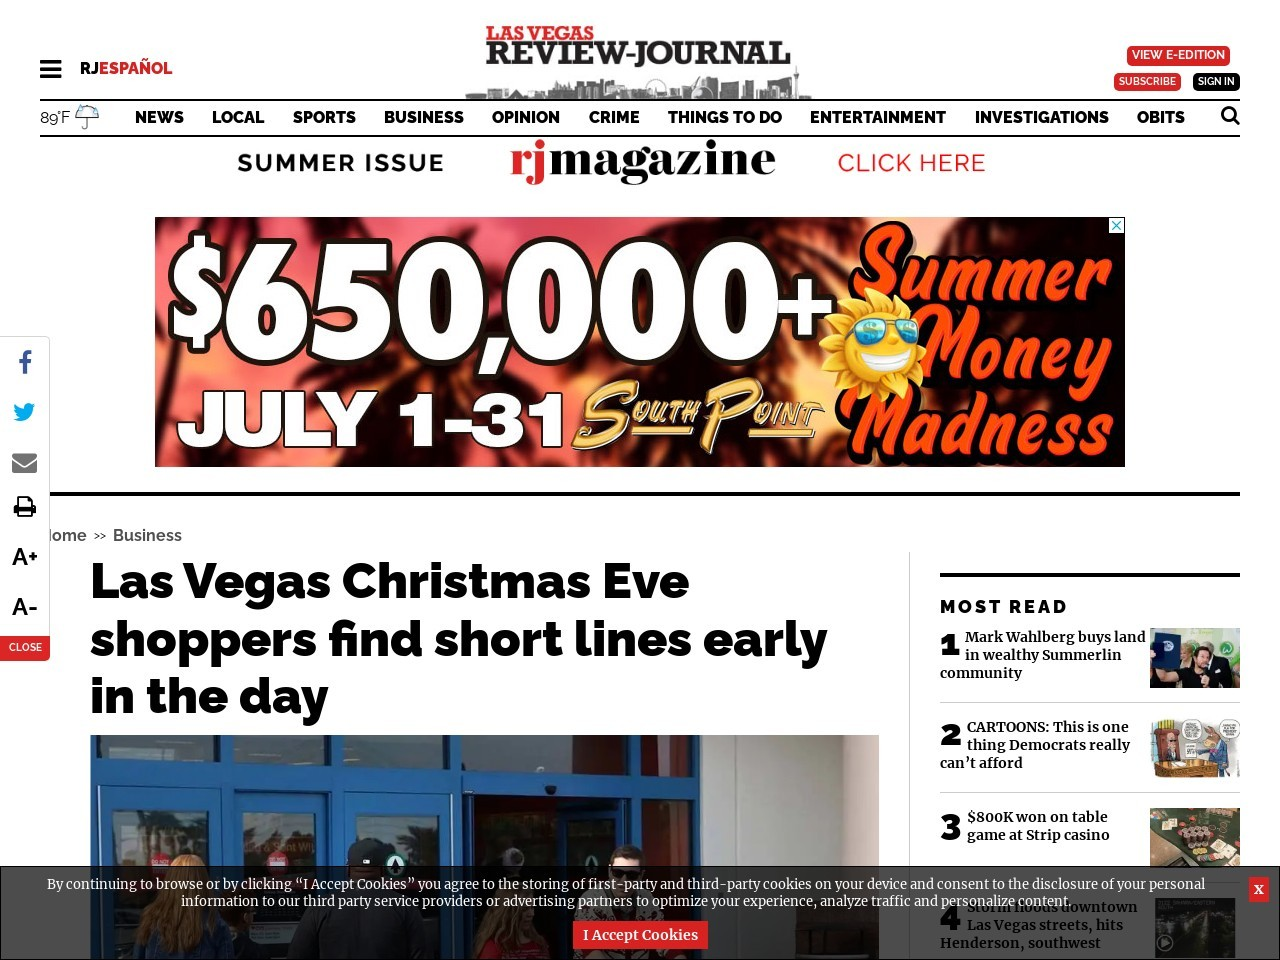 Las Vegas Christmas Eve shoppers find short lines early in the day